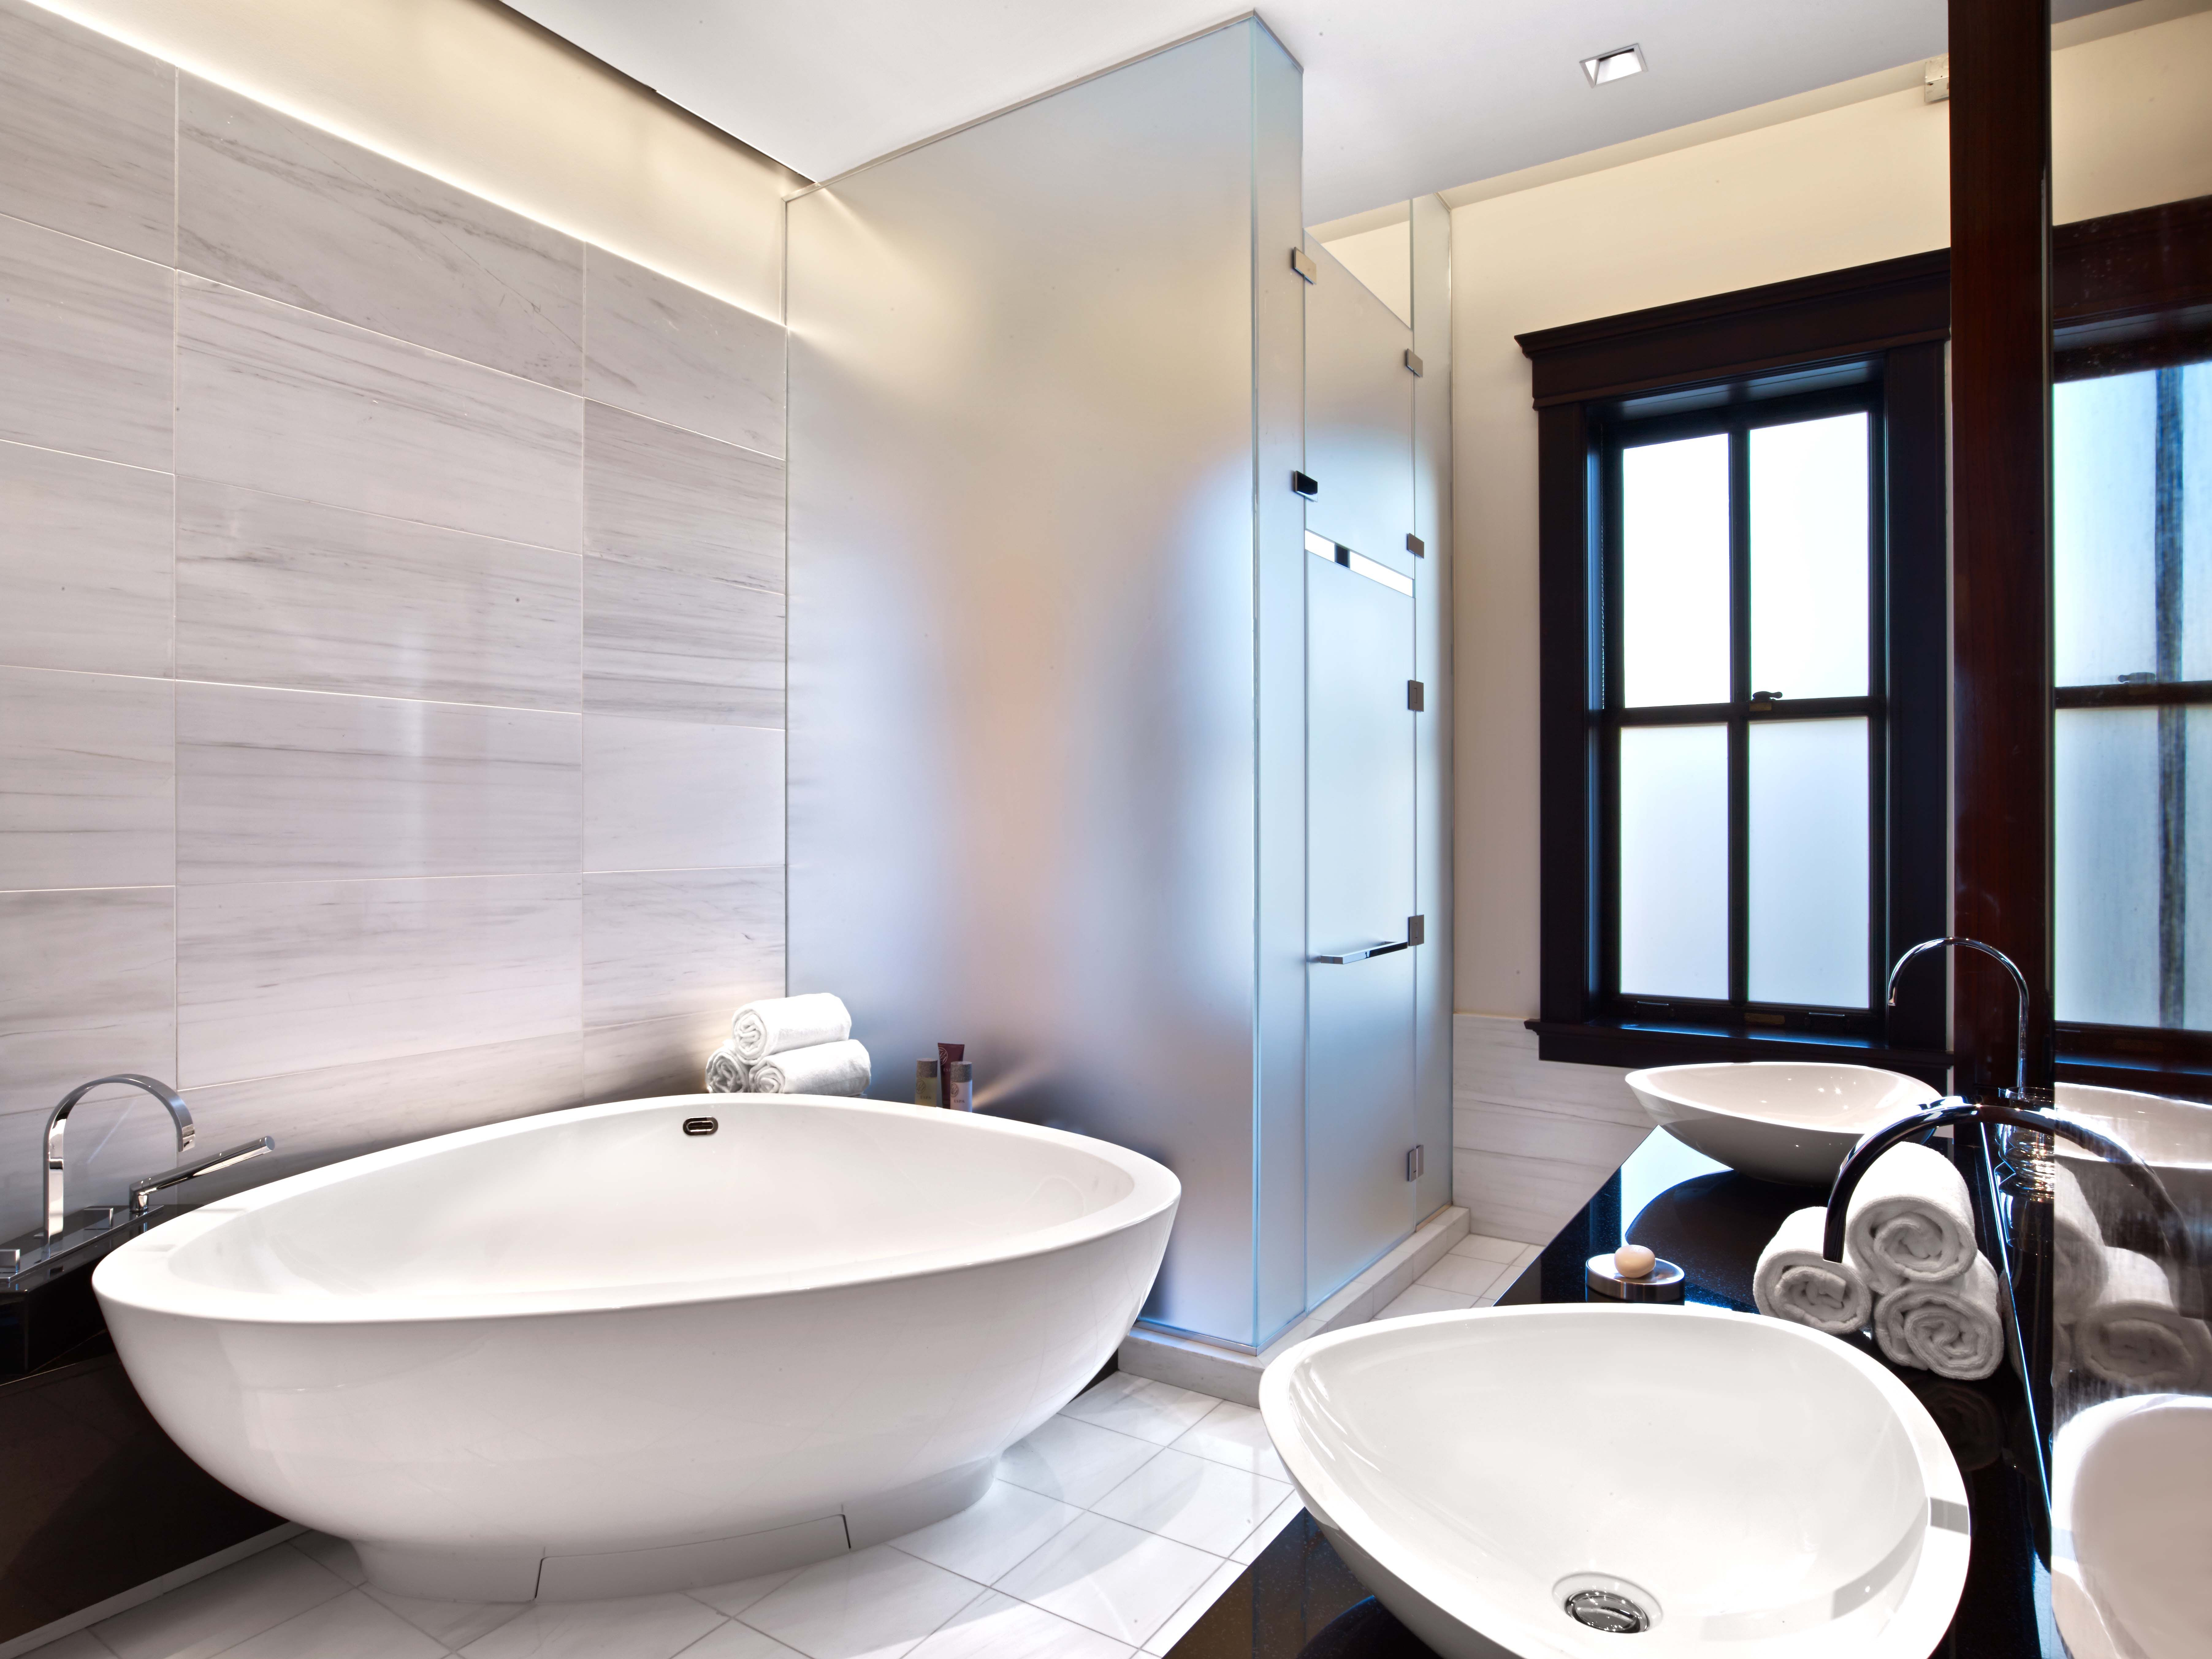 Penthouse Master Bathroom At The Joule